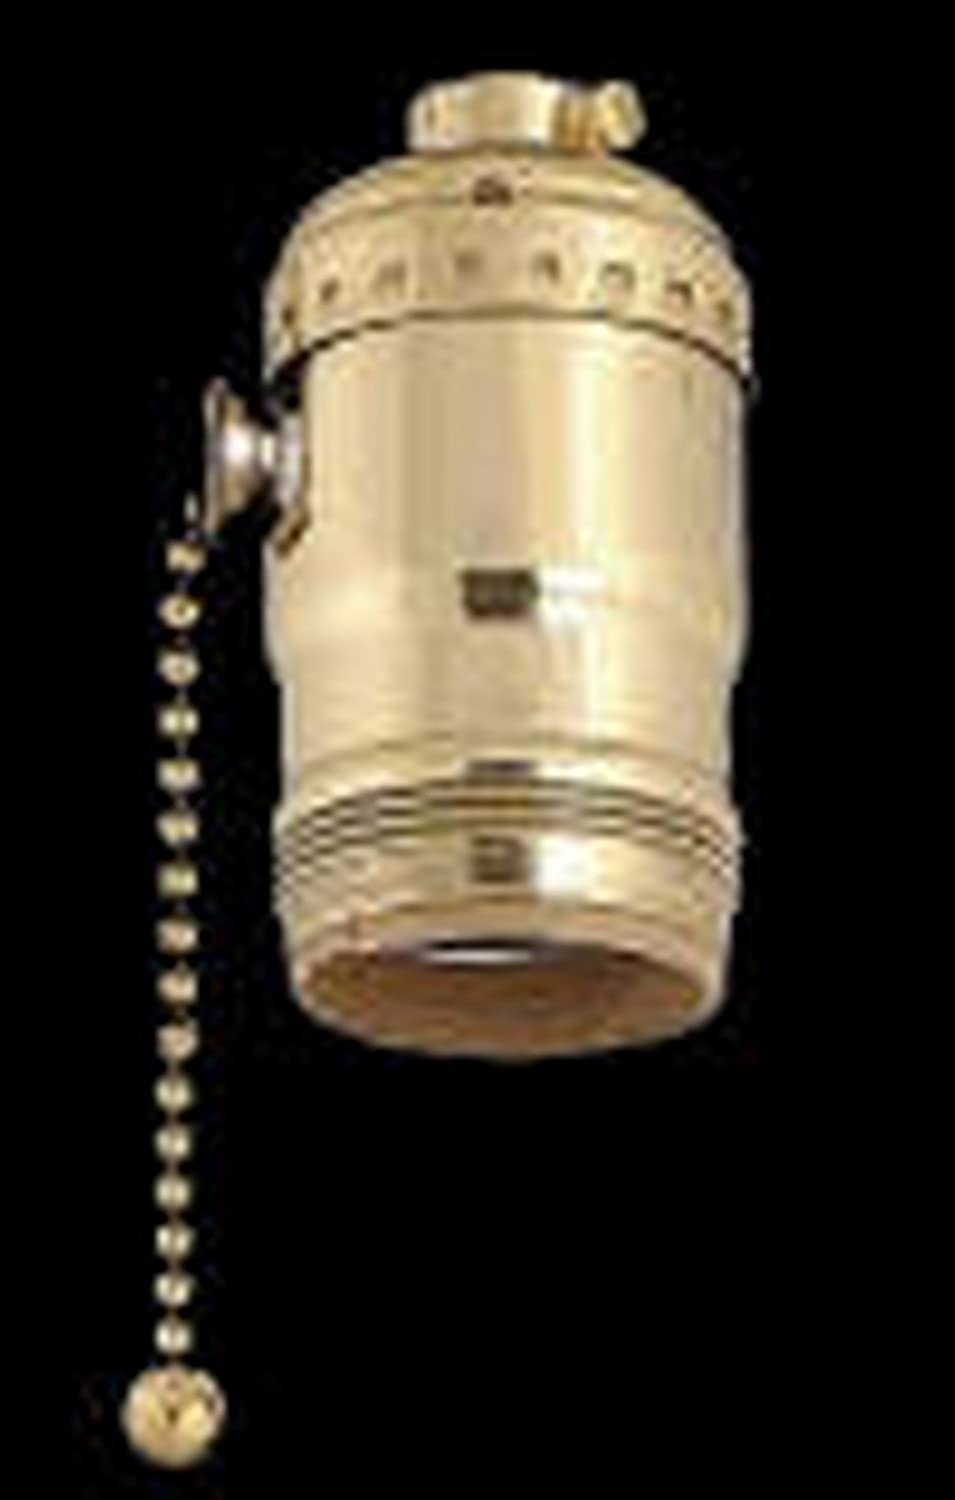 High Quality Upgradelights Uno Socket With Pull Chain And Swivel Down Bridge Lamp Part  Light Part   Floor Lamps   Amazon.com